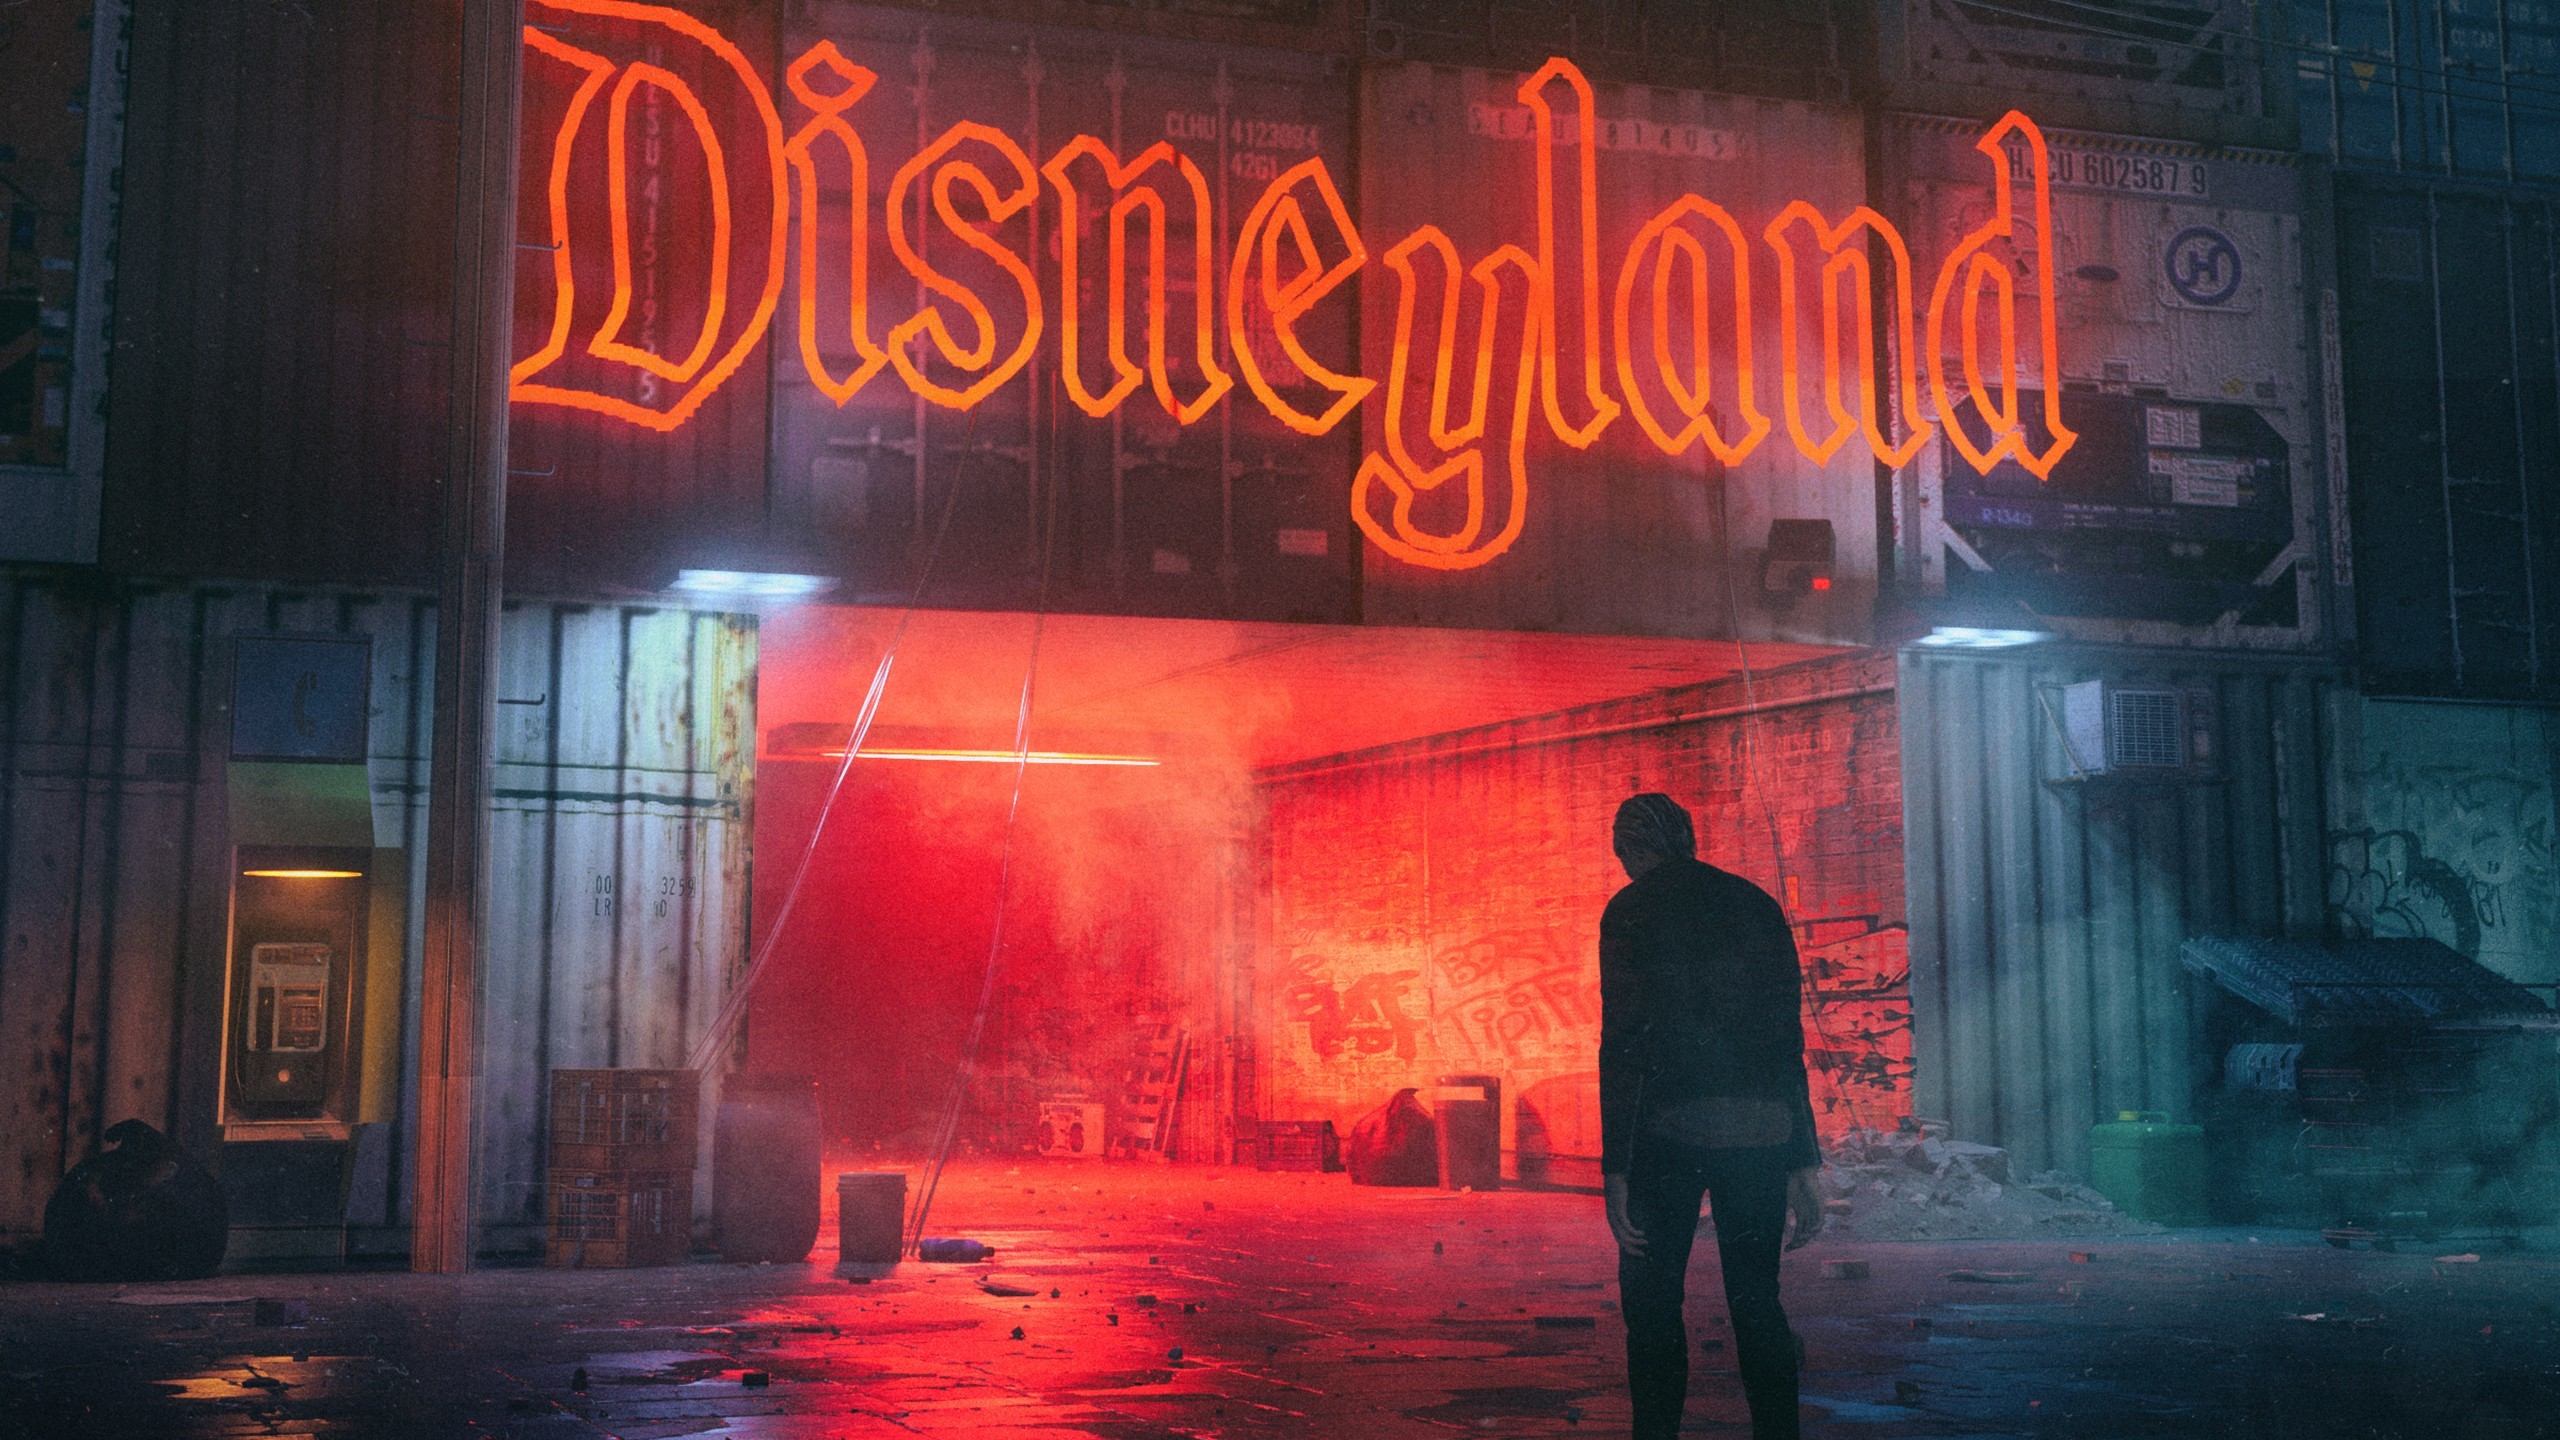 2560x1440 Neon Disneyland Wallpapers. Â«Â«